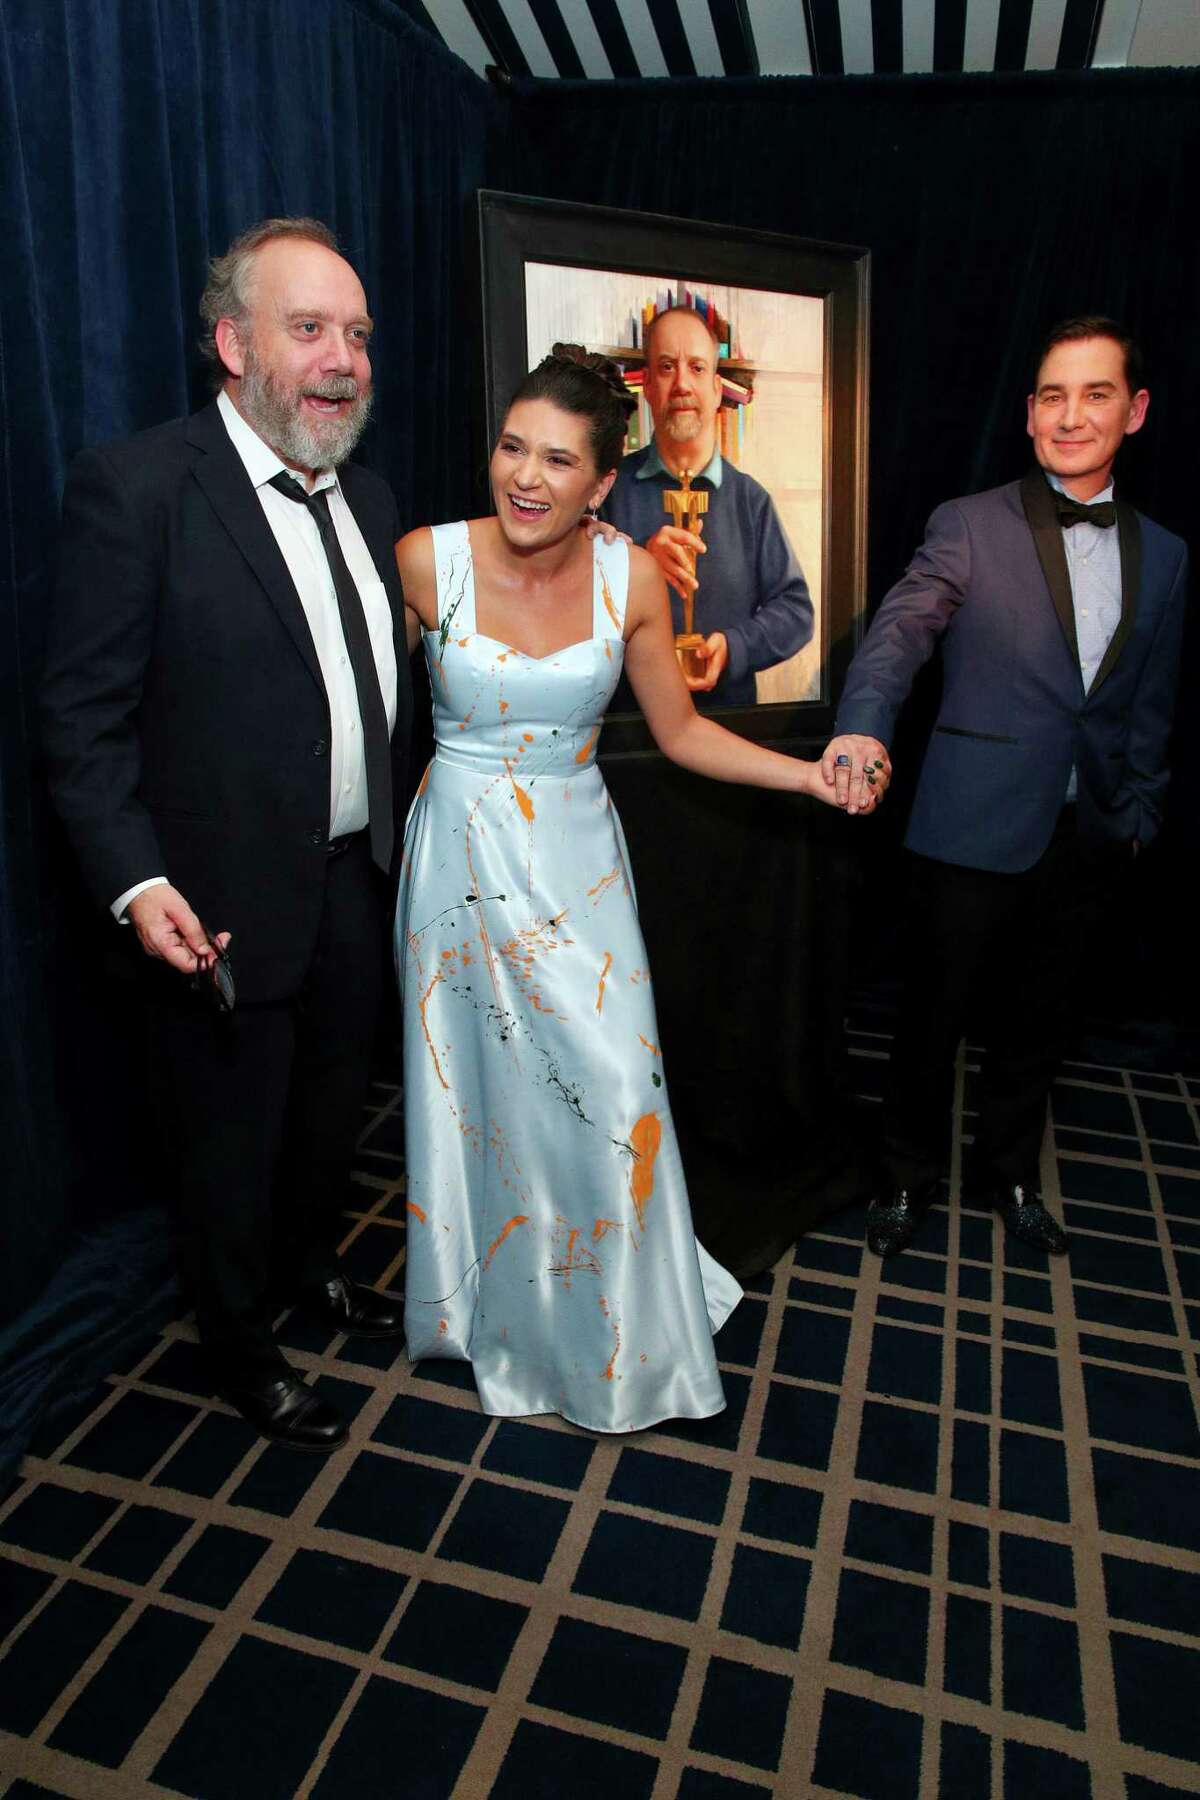 Paul Giamatti, Sequoia Schmidt and artist Graydon Parrish pose with his painting during the unveiling of Paul Giamatti fundraiser for the Denali Foundation at the Yale Club on October 24, 2019 in New York City.